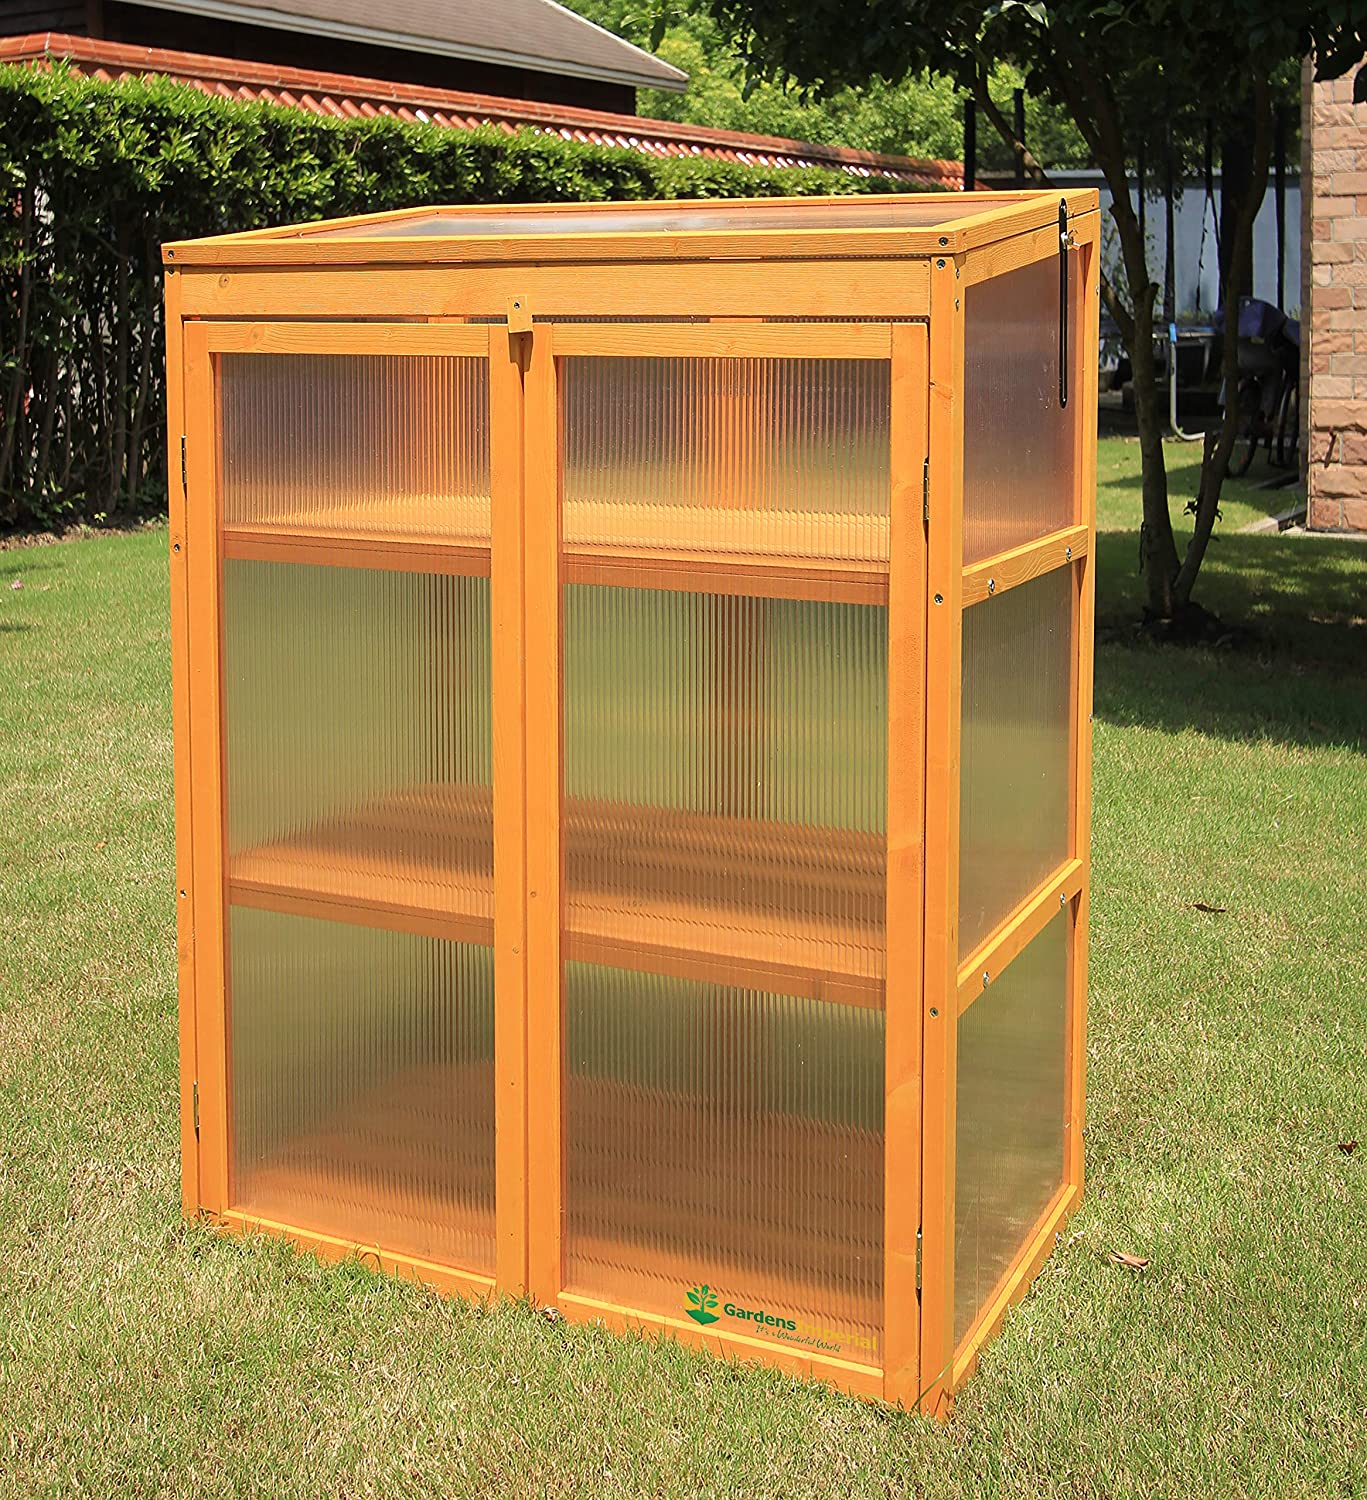 Gardens Imperial® Buckingham 3-tier Wooden Mini Greenhouse with Polycarbonate Panels 80 (w) x 48 (d) x 106 (h) cm